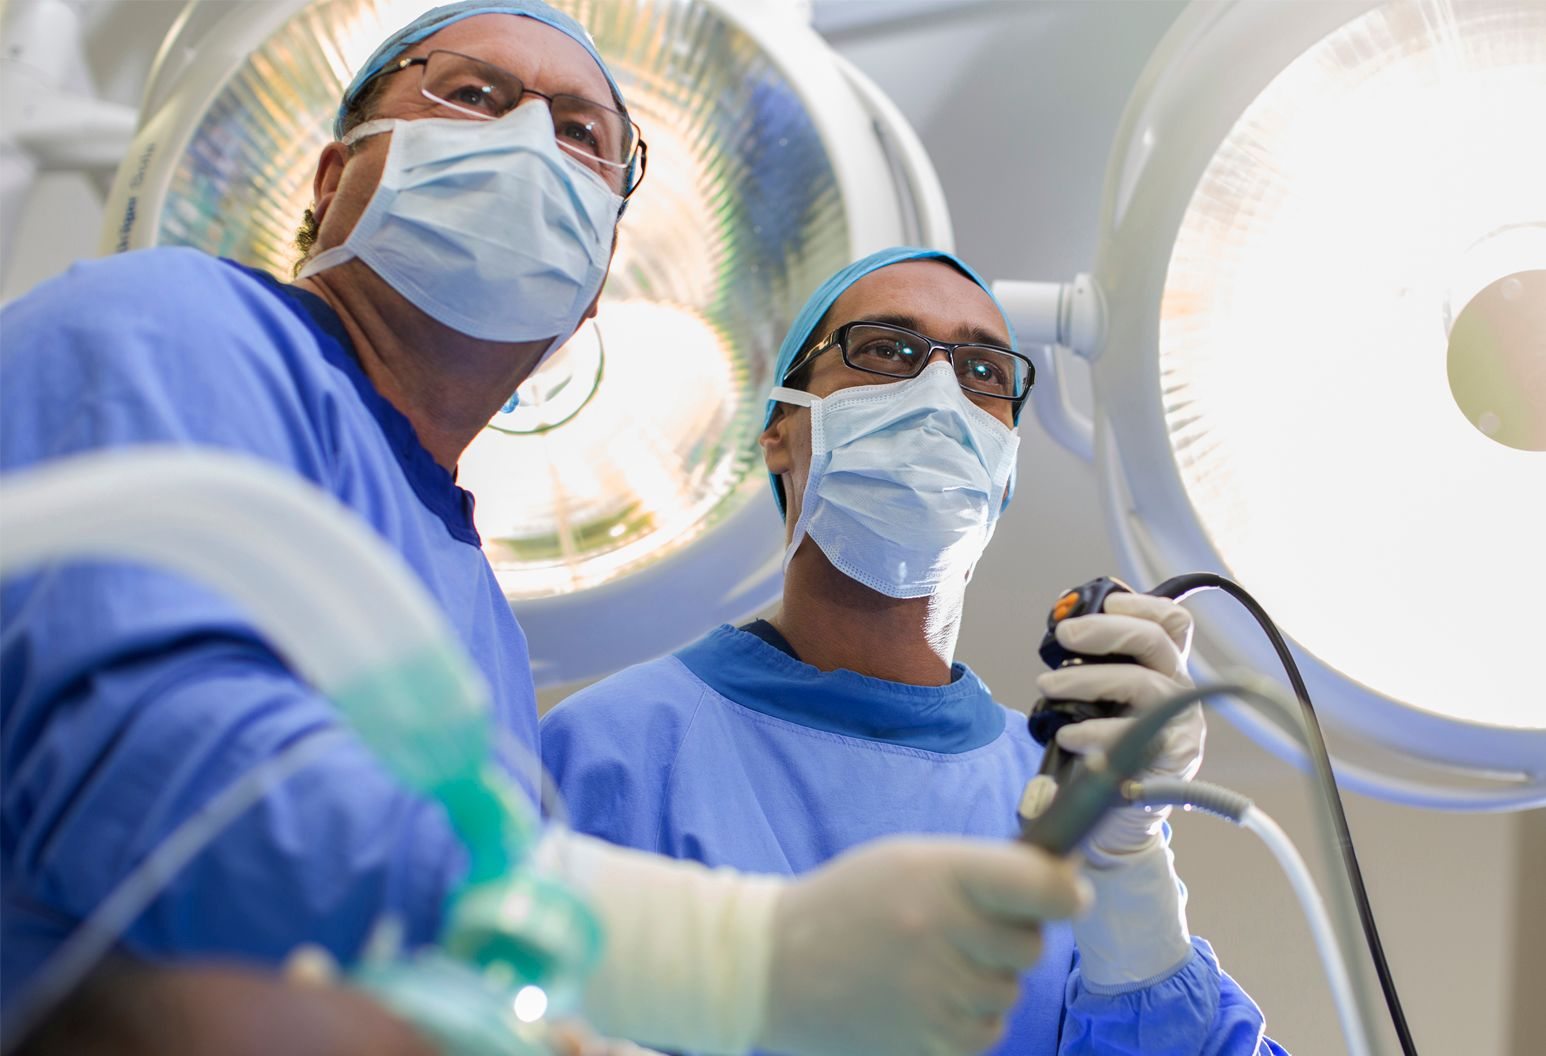 Two male physicians in surgical gear operating with robotic technology